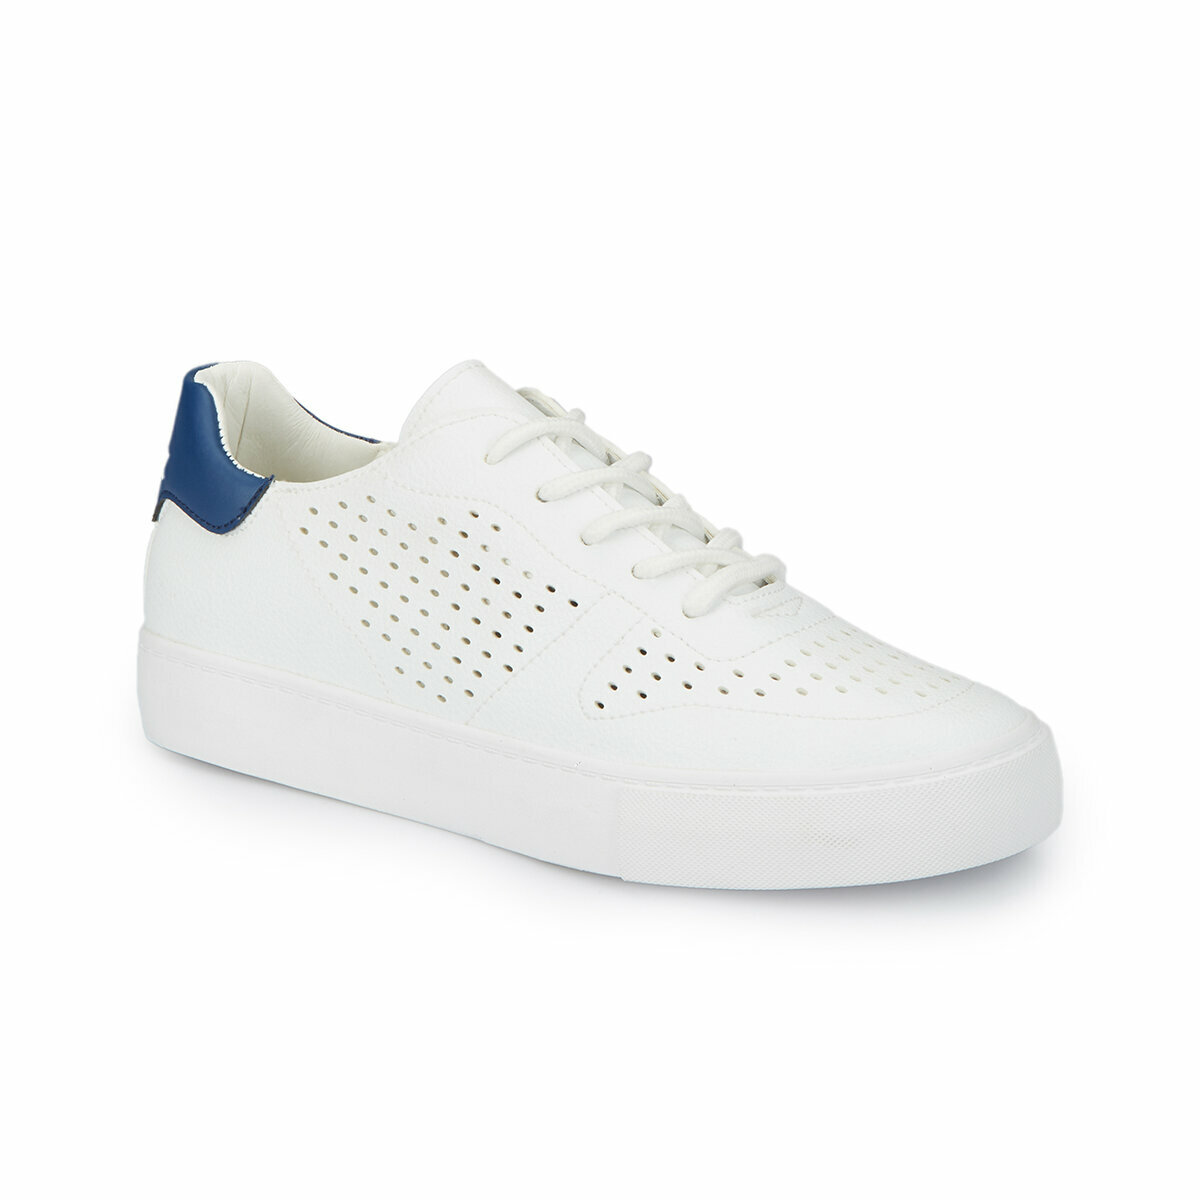 FLO VICTORIA White Women 'S Sneaker Shoes LUMBERJACK